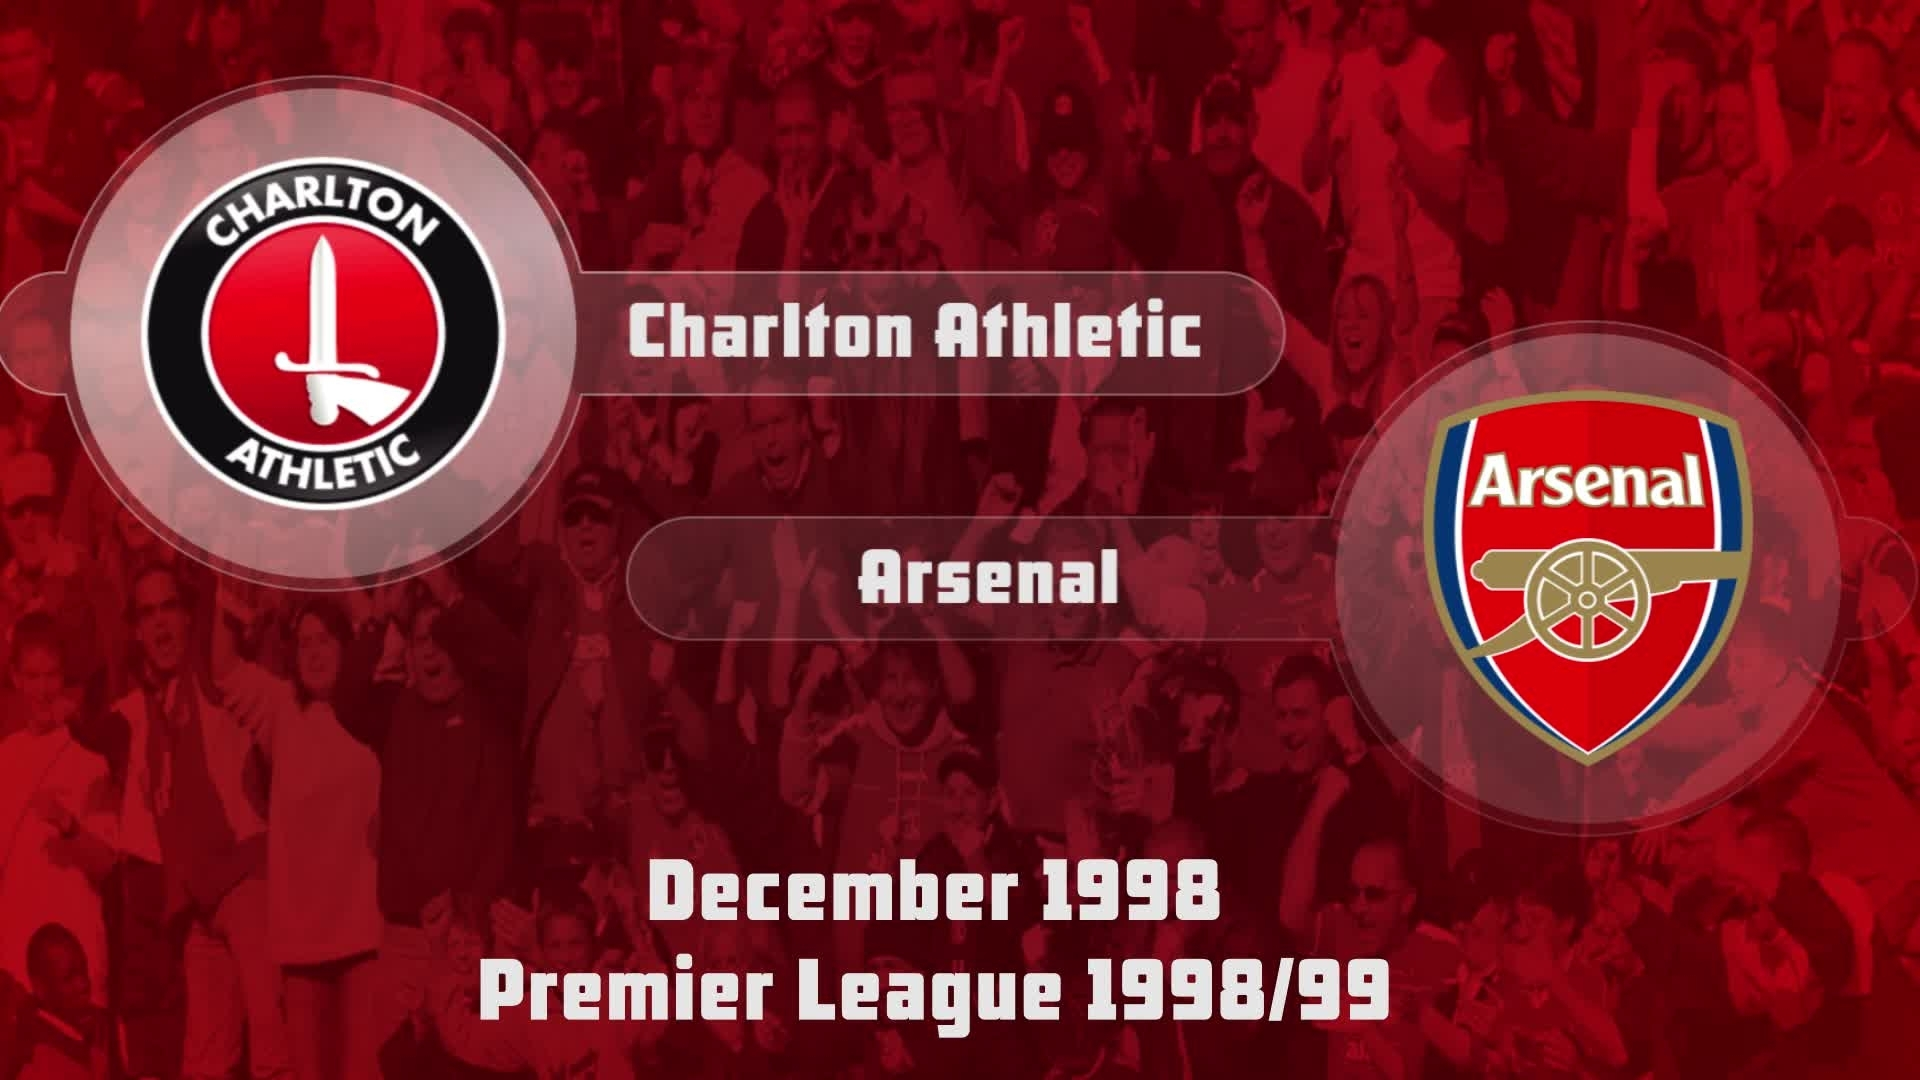 23 HIGHLIGHTS | Charlton 0 Arsenal 1 (Dec 1998)